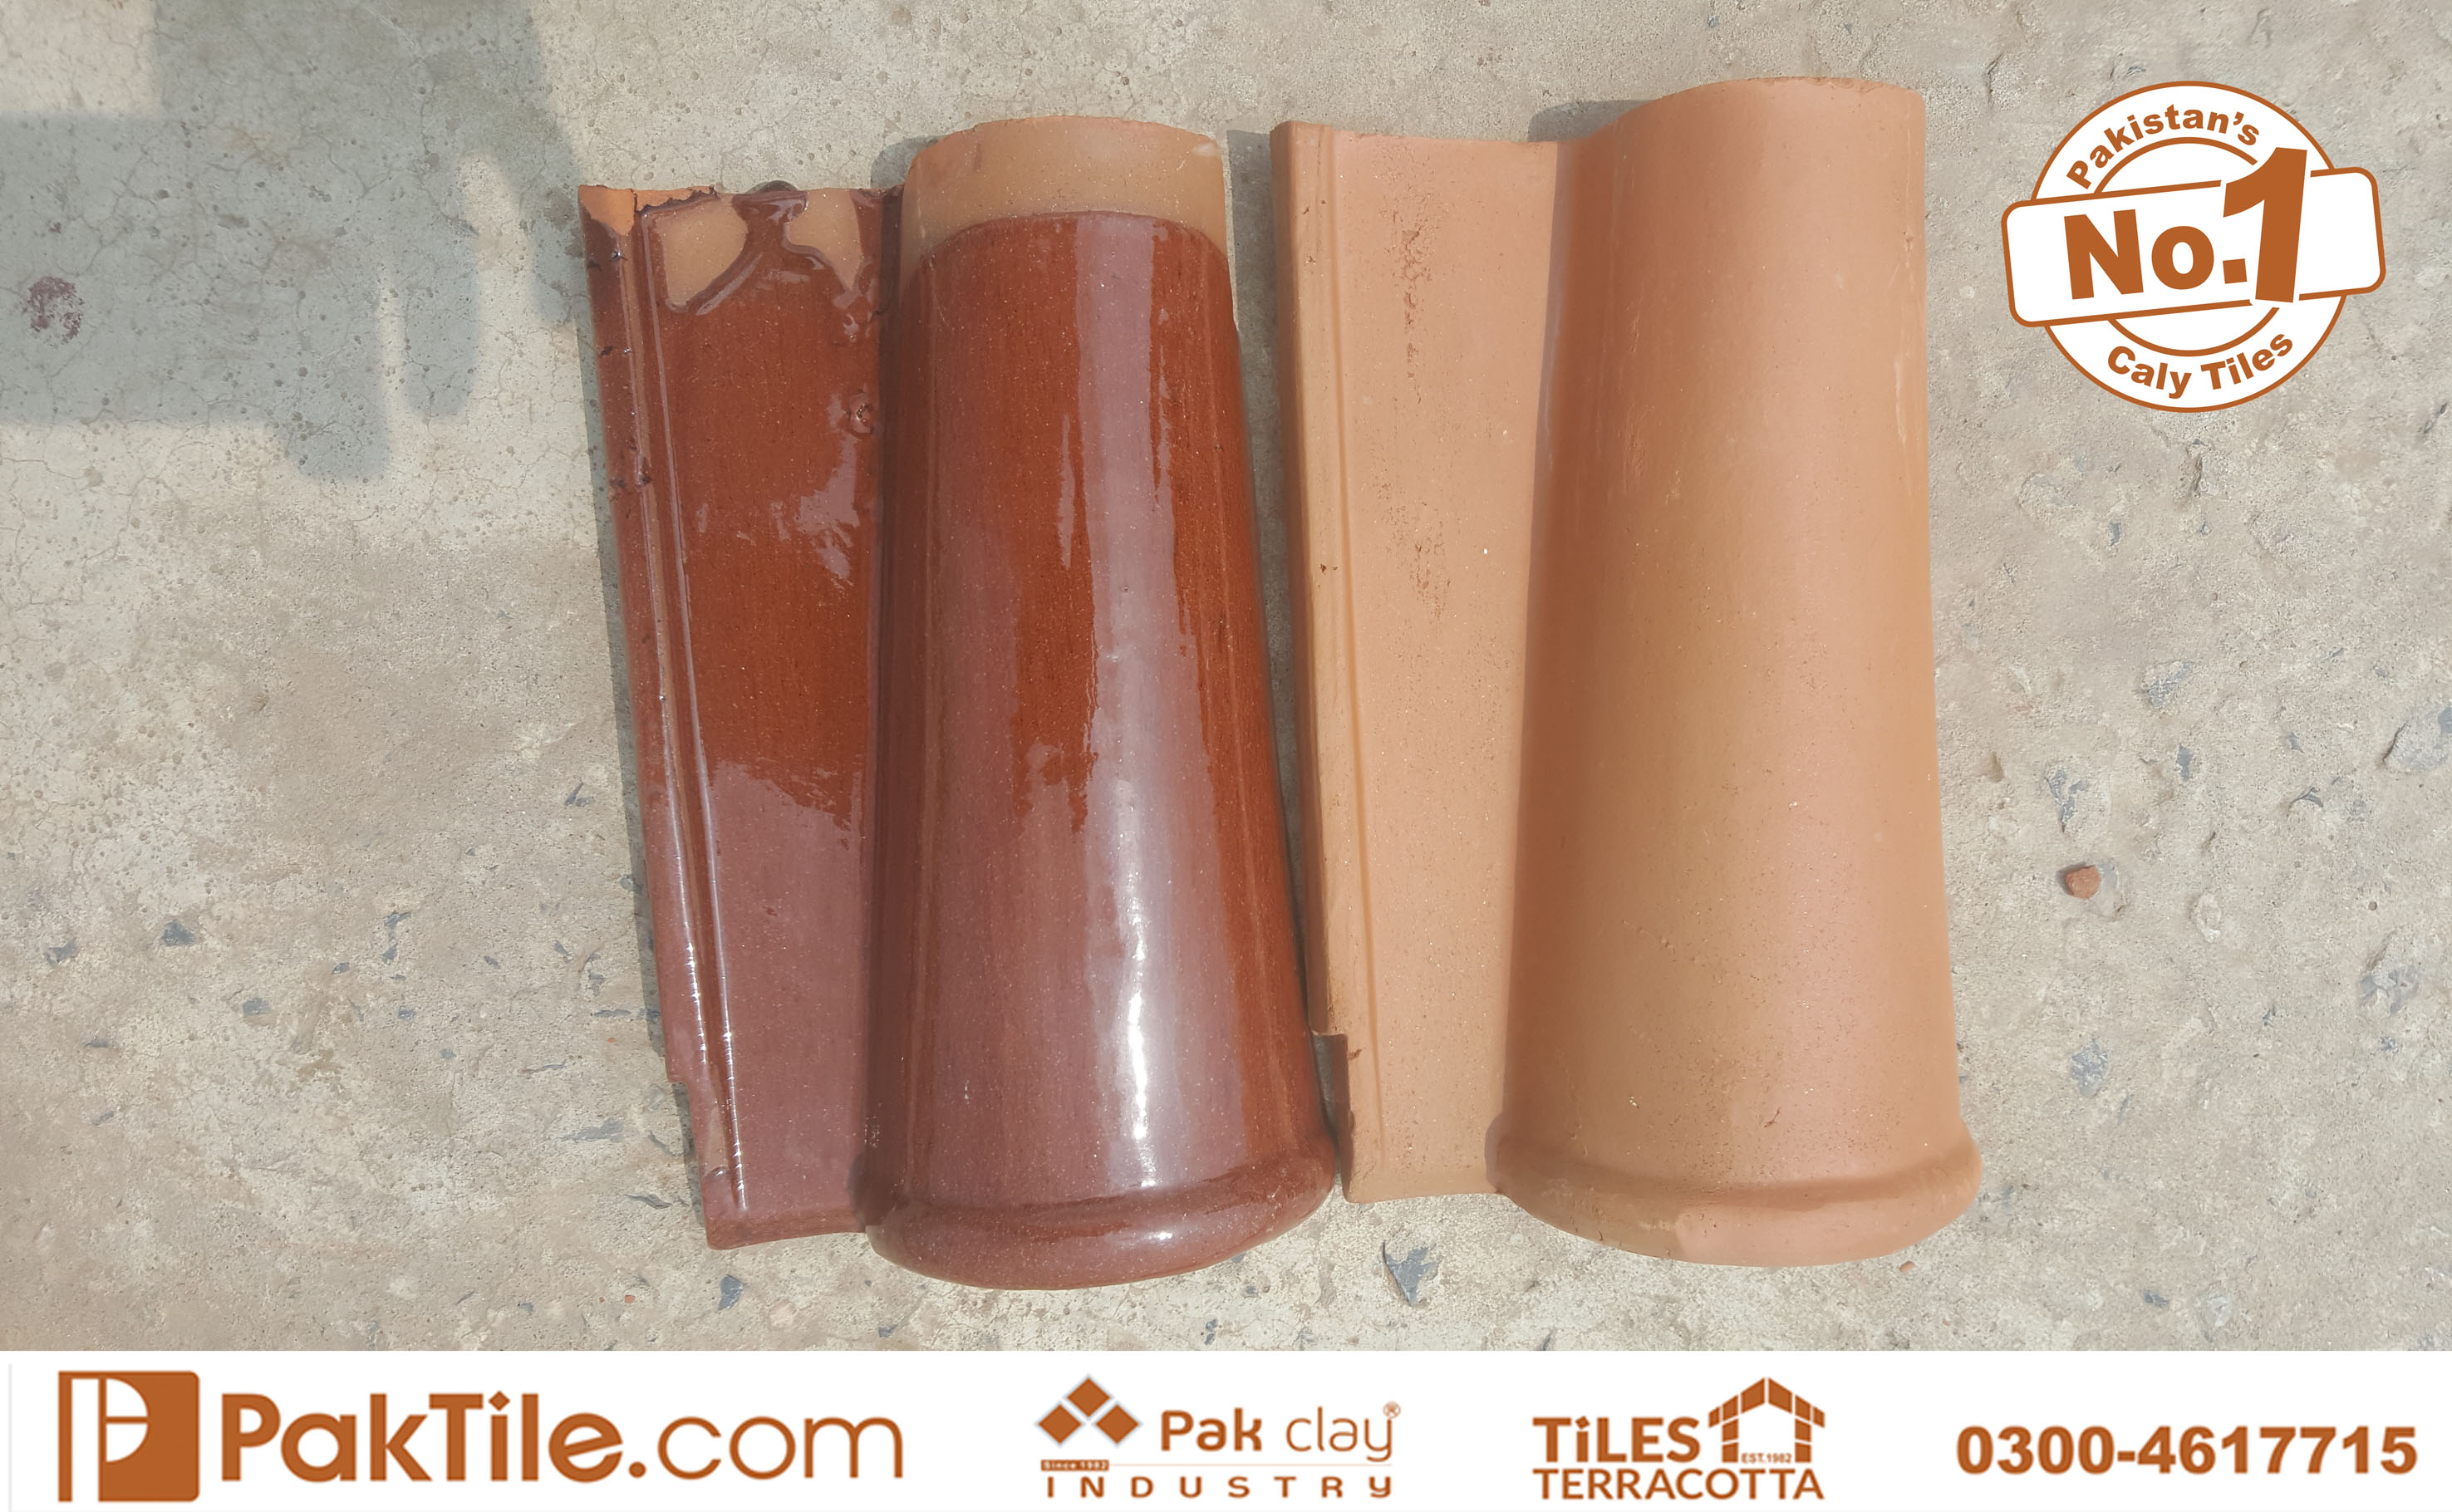 1 High Quality Natural Glazed Khaprail Roof Tiles Design Types and Prices in Karachi Pakistan Images